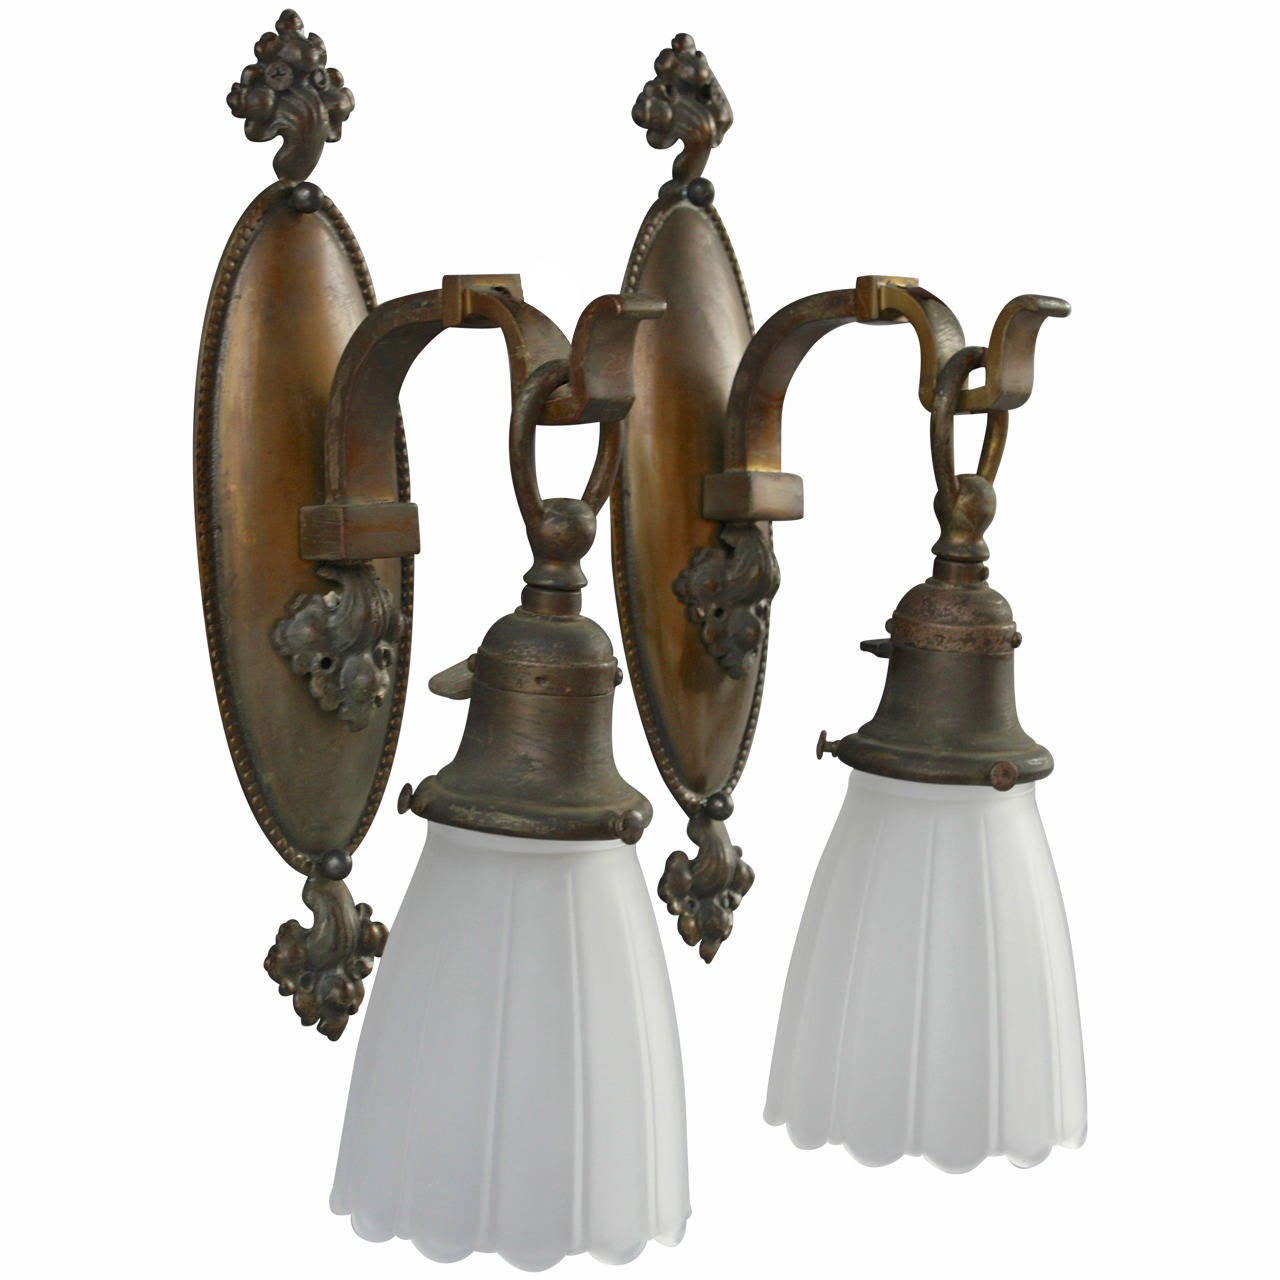 Wall Sconces Glass Shades : Pair of Brass Sconces with Glass Shades at 1stdibs